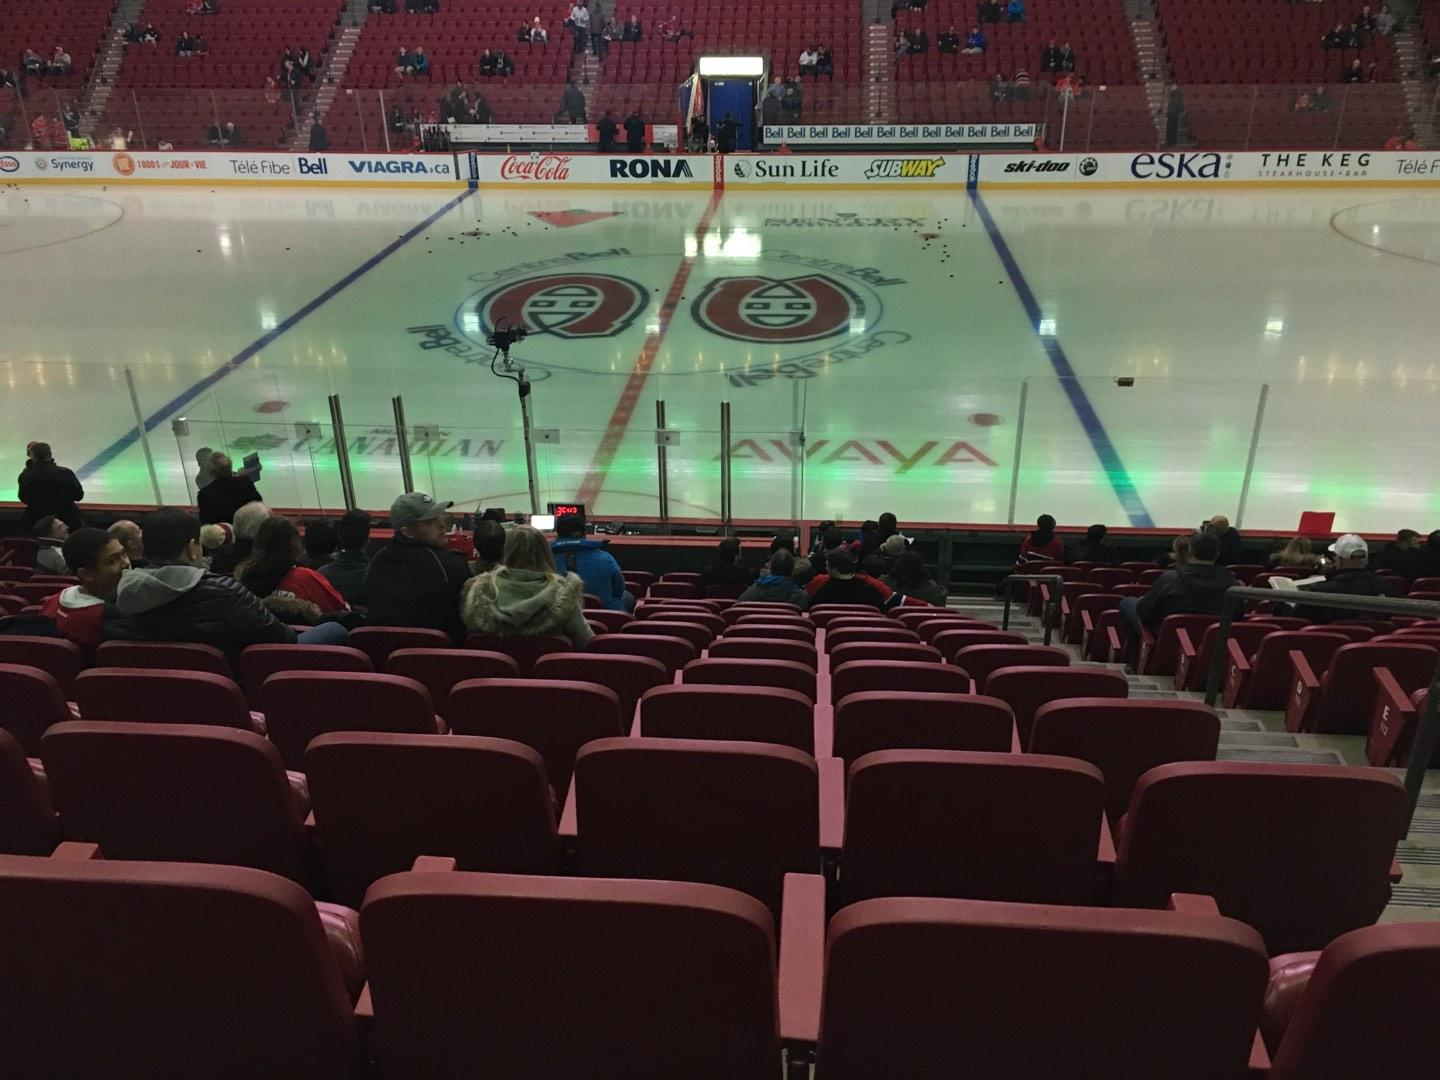 Centre Bell Section 113 Row L Seat 1-2